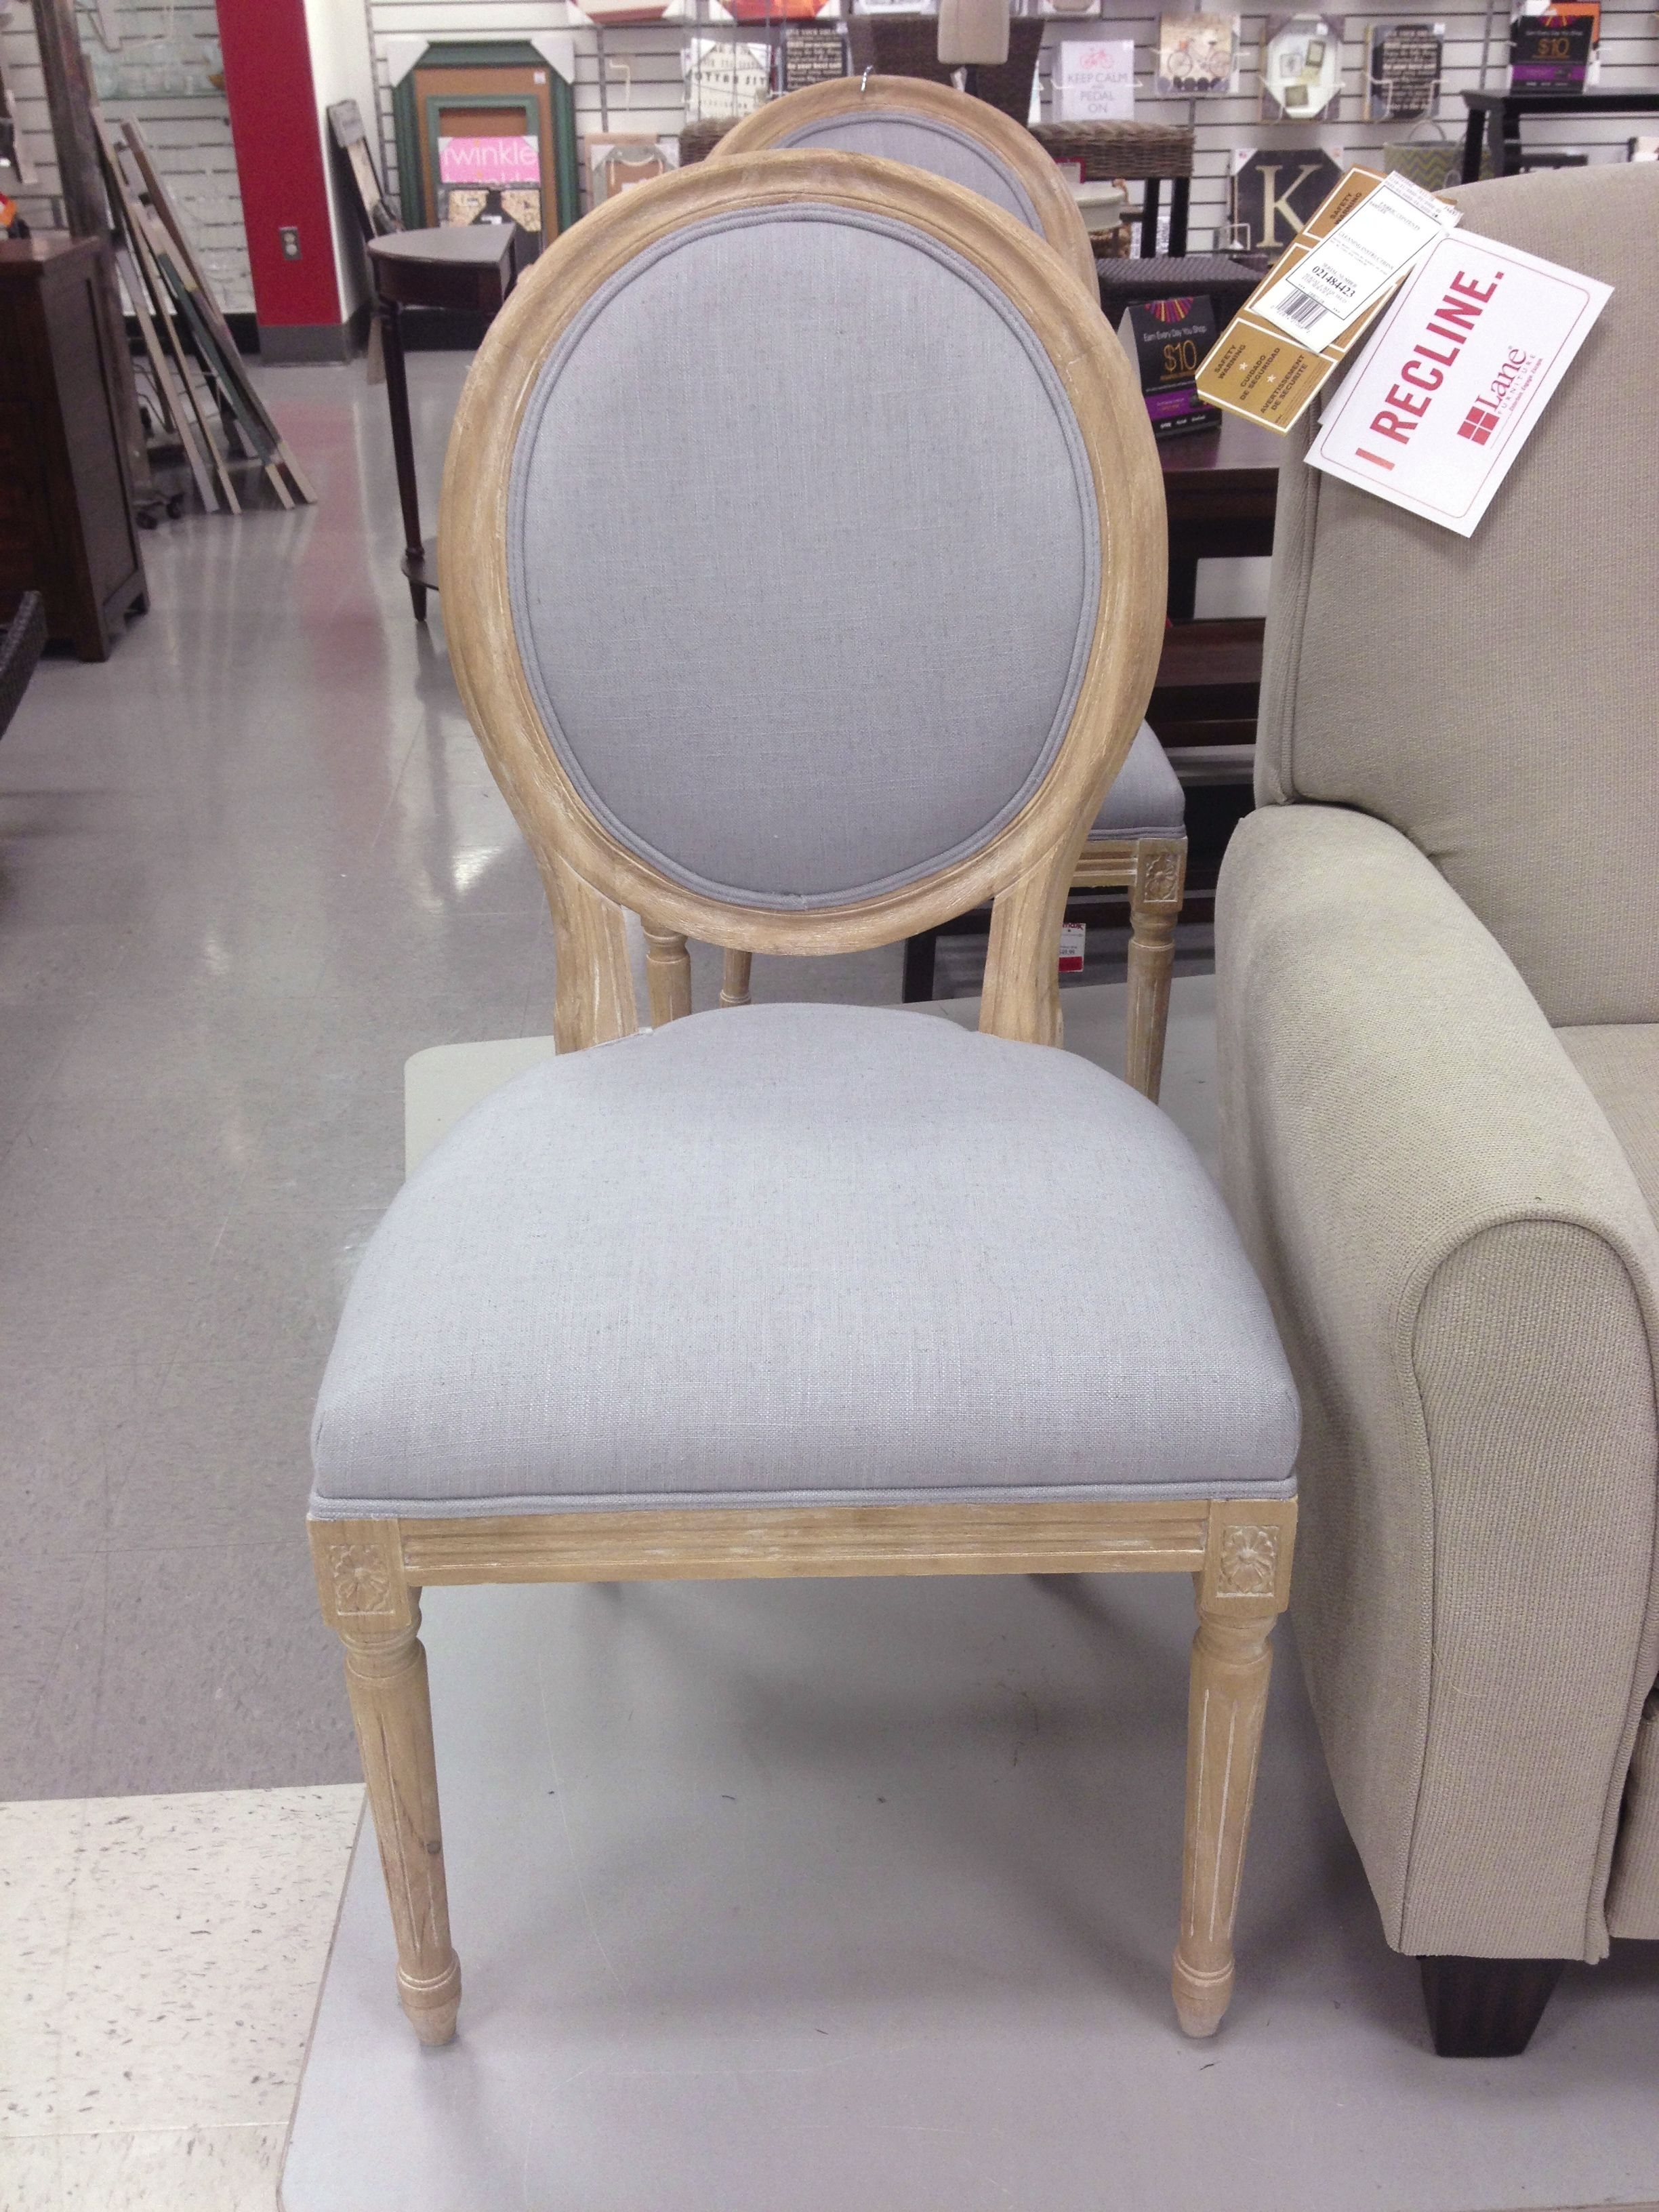 Dining Chairs At Marshalls Office Chair Mat For Laminate Floor French Tj Maxx Room Pinterest